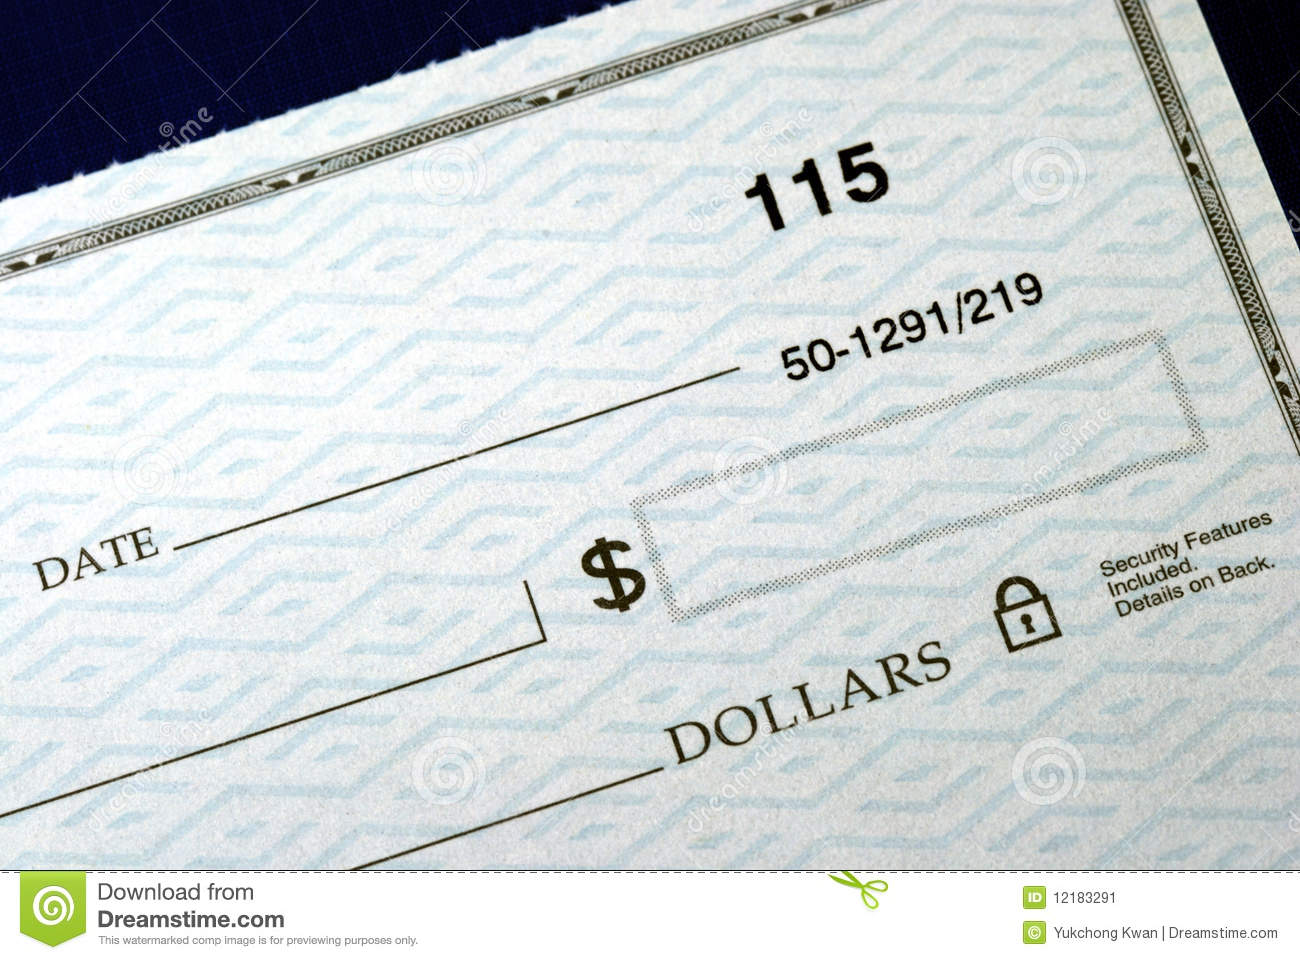 How to write amount in dollars